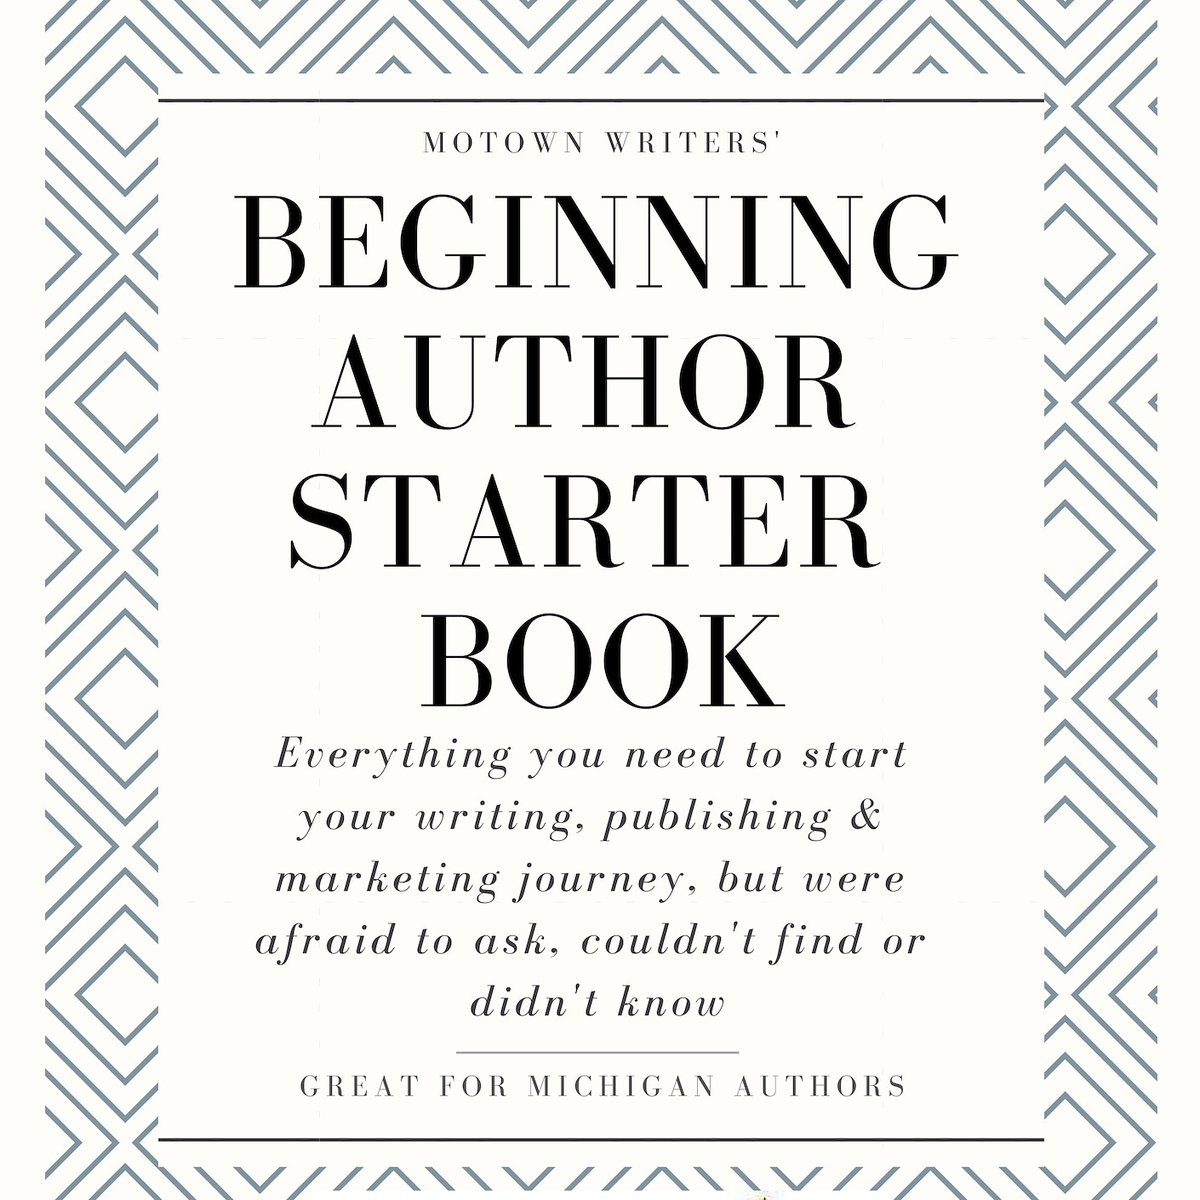 Michiganwriters: Looking for a quick checklist to write publish and market your book  Your search is answered  #writingcommunity #selfpub #bookpromo